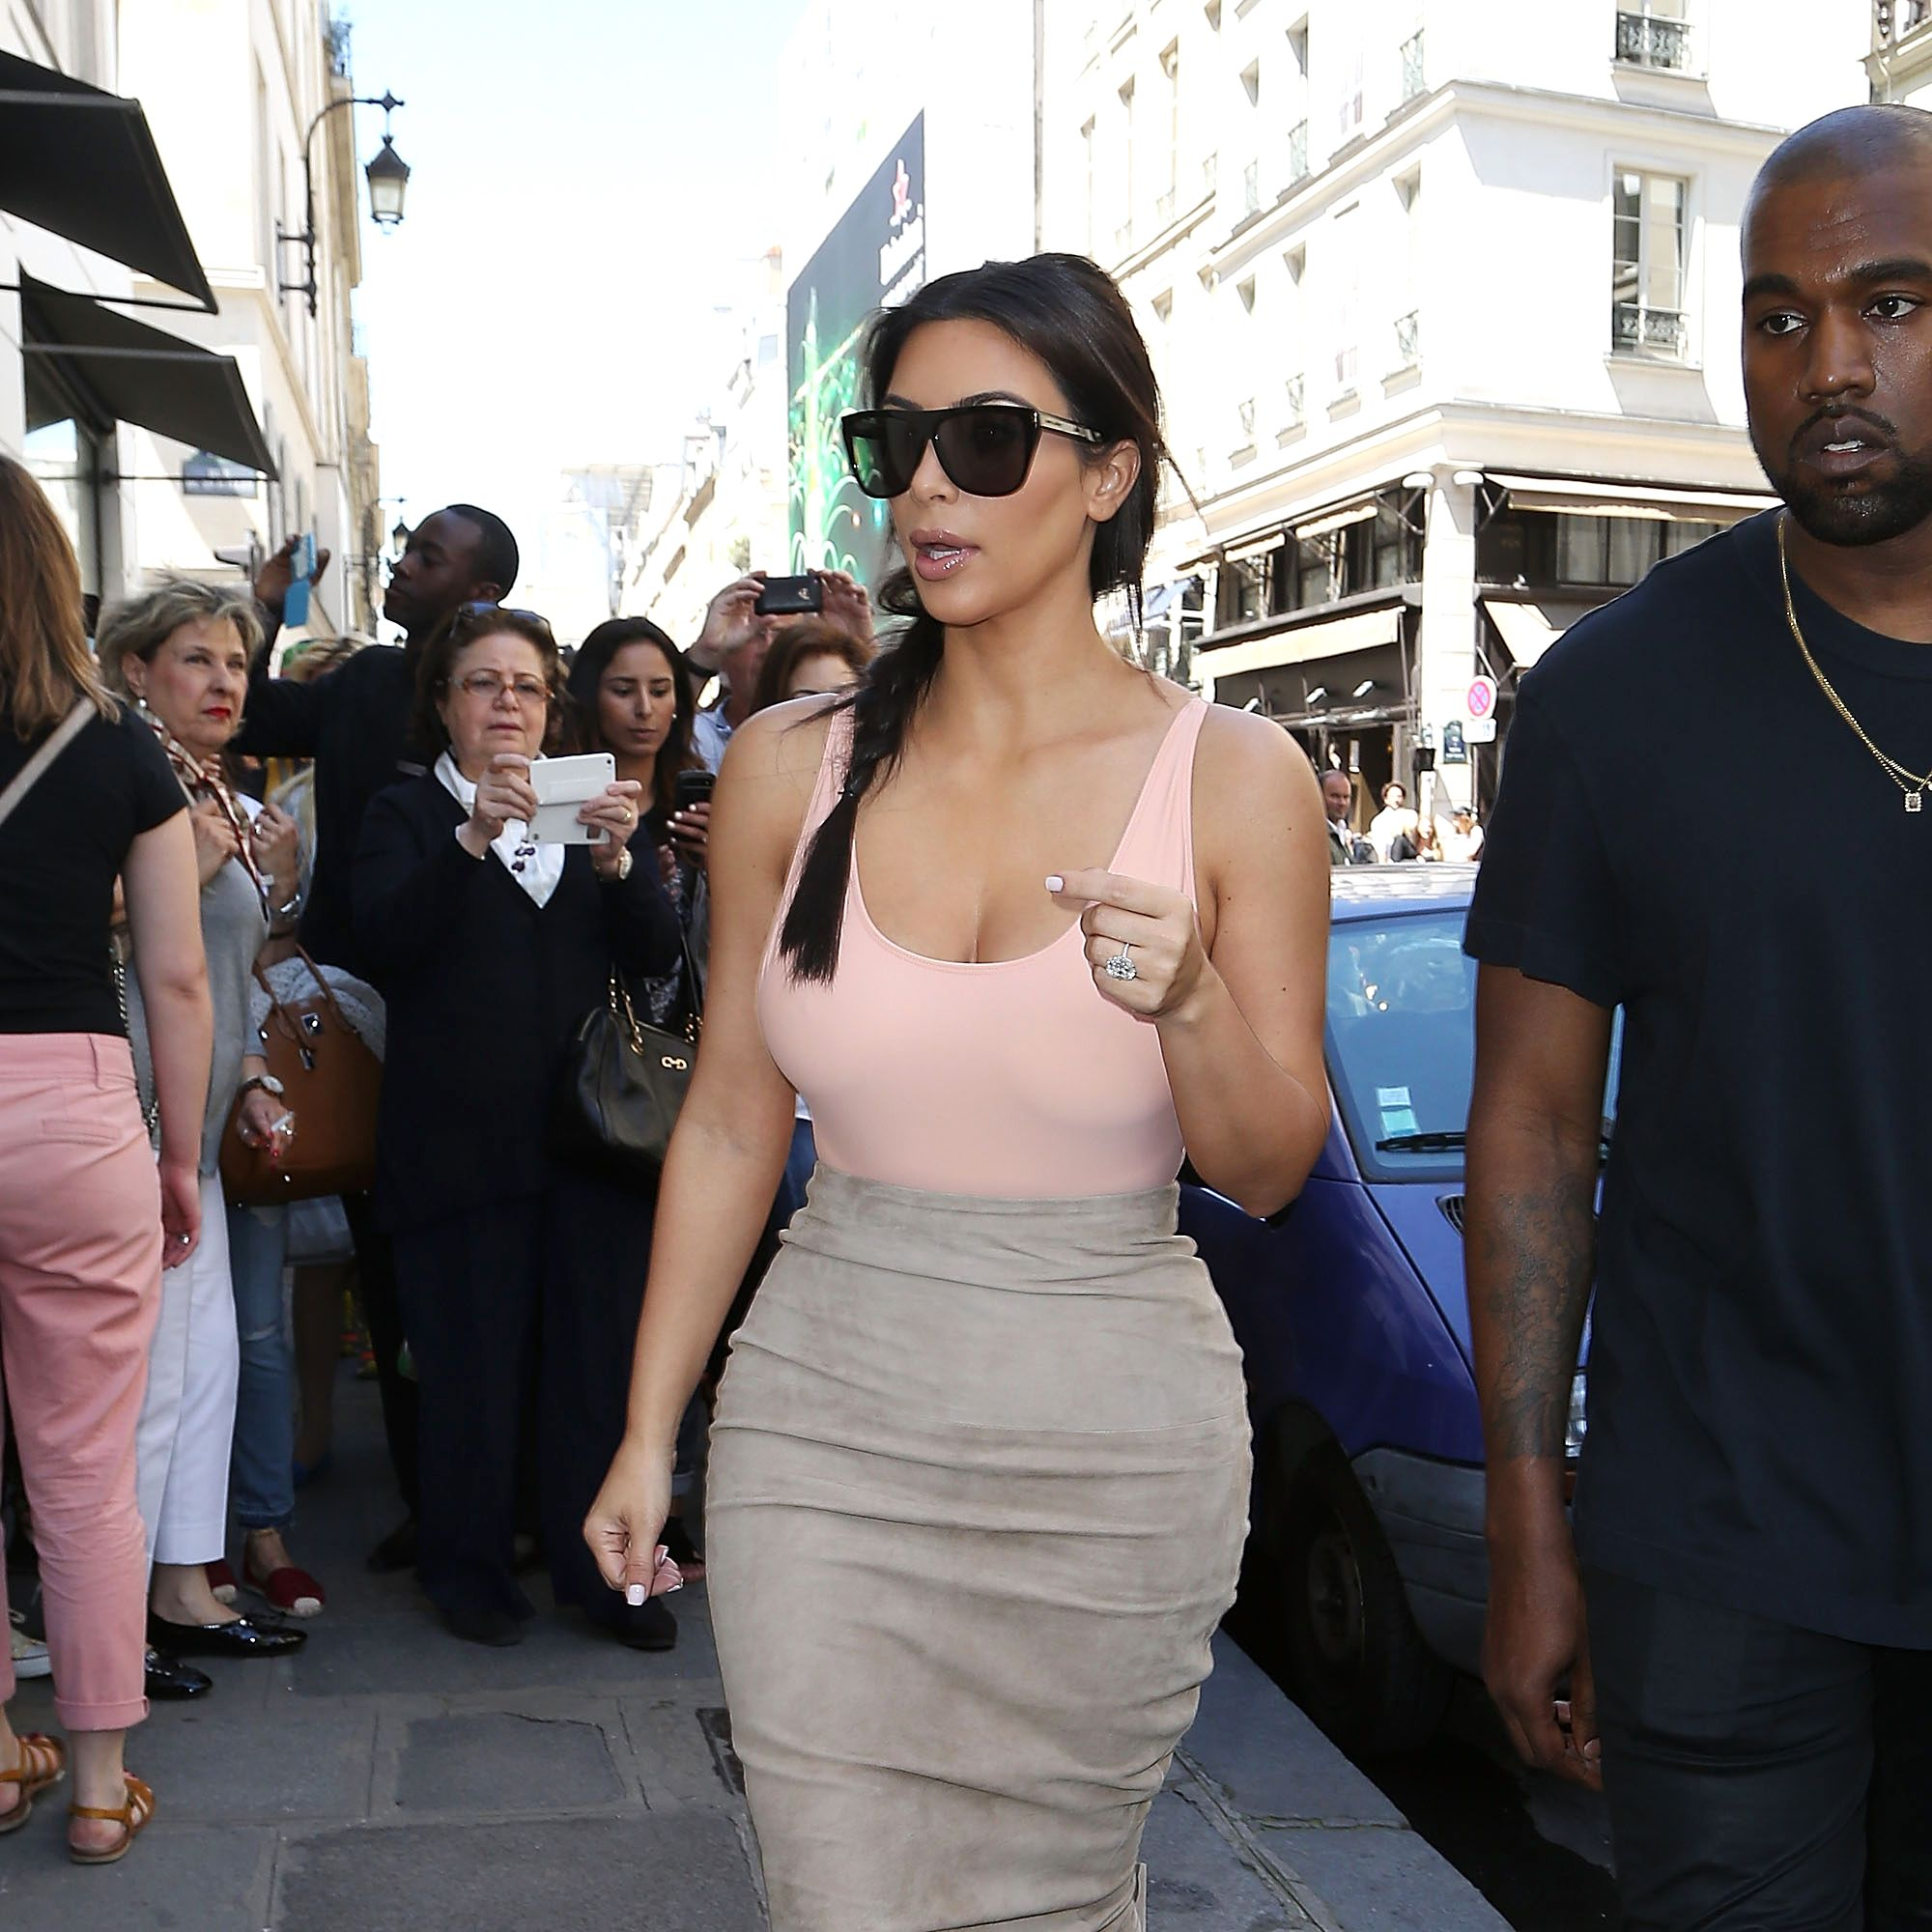 <p>Kim Kardashian delivers minimalism with major sex appeal by keeping her silhouettes body-skimming and her color palettes muted. Recreate her sultry, streamlined aesthetic with a bodysuit tucked into a skirt that hugs the curves from high-waist to knee-length hem—both in subdued neutral hues, of course. </p>